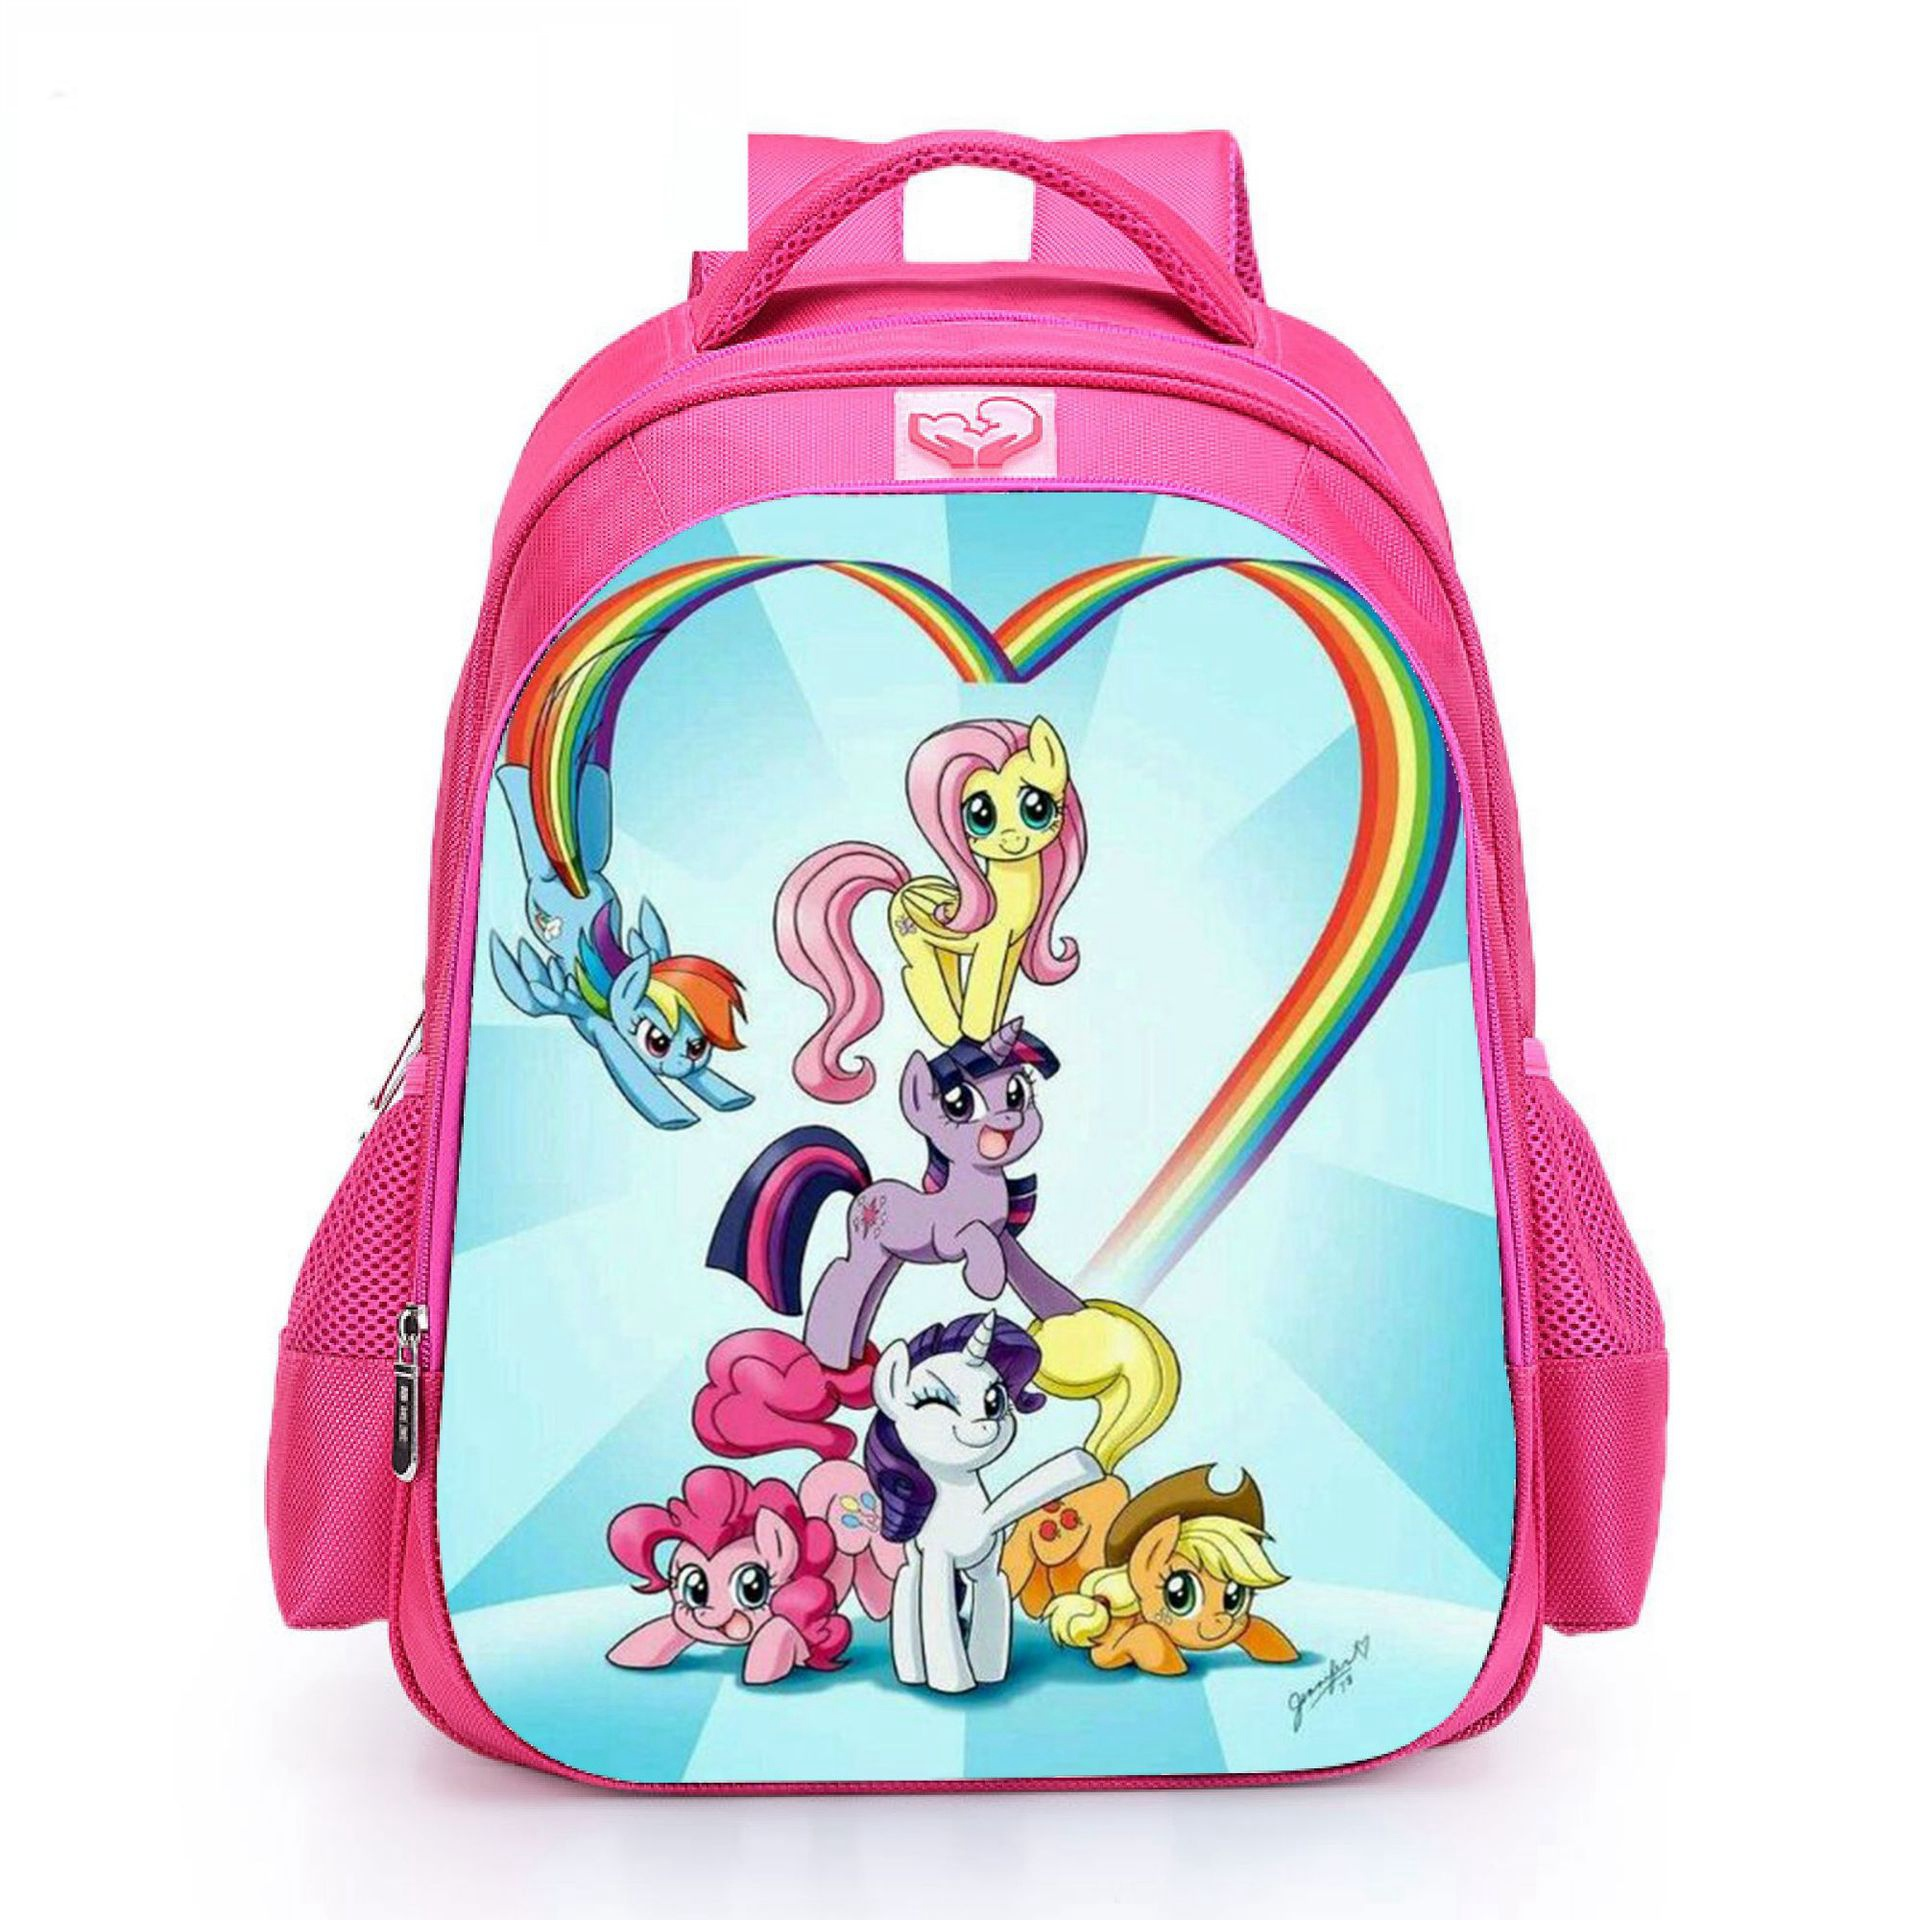 2019 New My Little Pony Backpacks  Unicorn Cute Cartoon Student Schoolbag Baby Girls Shoulder Book Bags Large-capacity